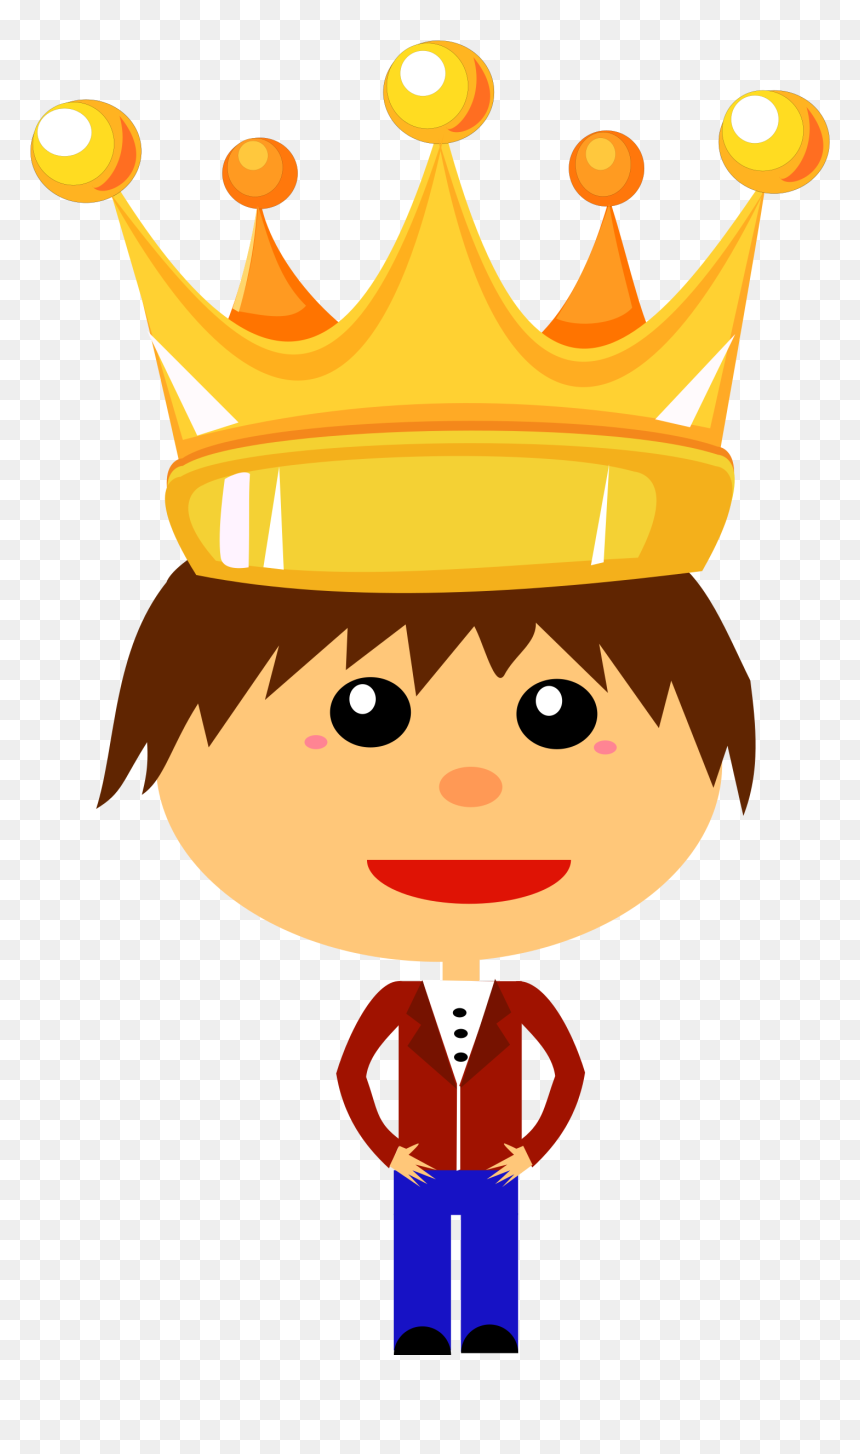 Boy With Crown Cartoon Hd Png Download Vhv Download this premium vector about golden monarchy crown isolated set, and discover more than 10 million professional graphic resources on freepik. boy with crown cartoon hd png download